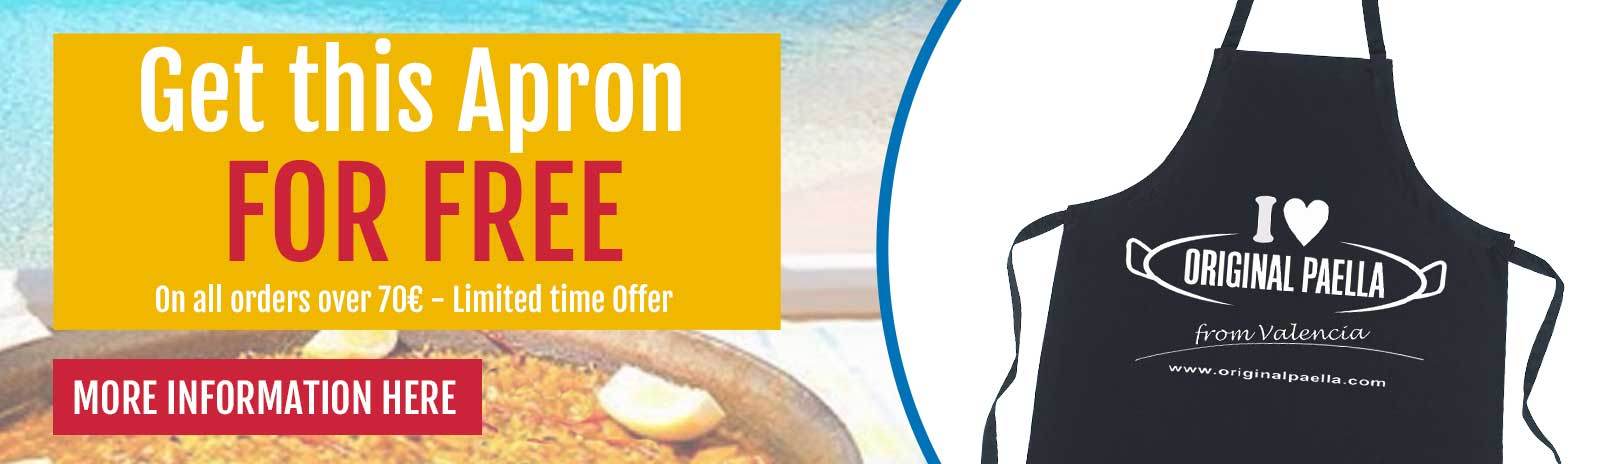 originalpaella apron for free